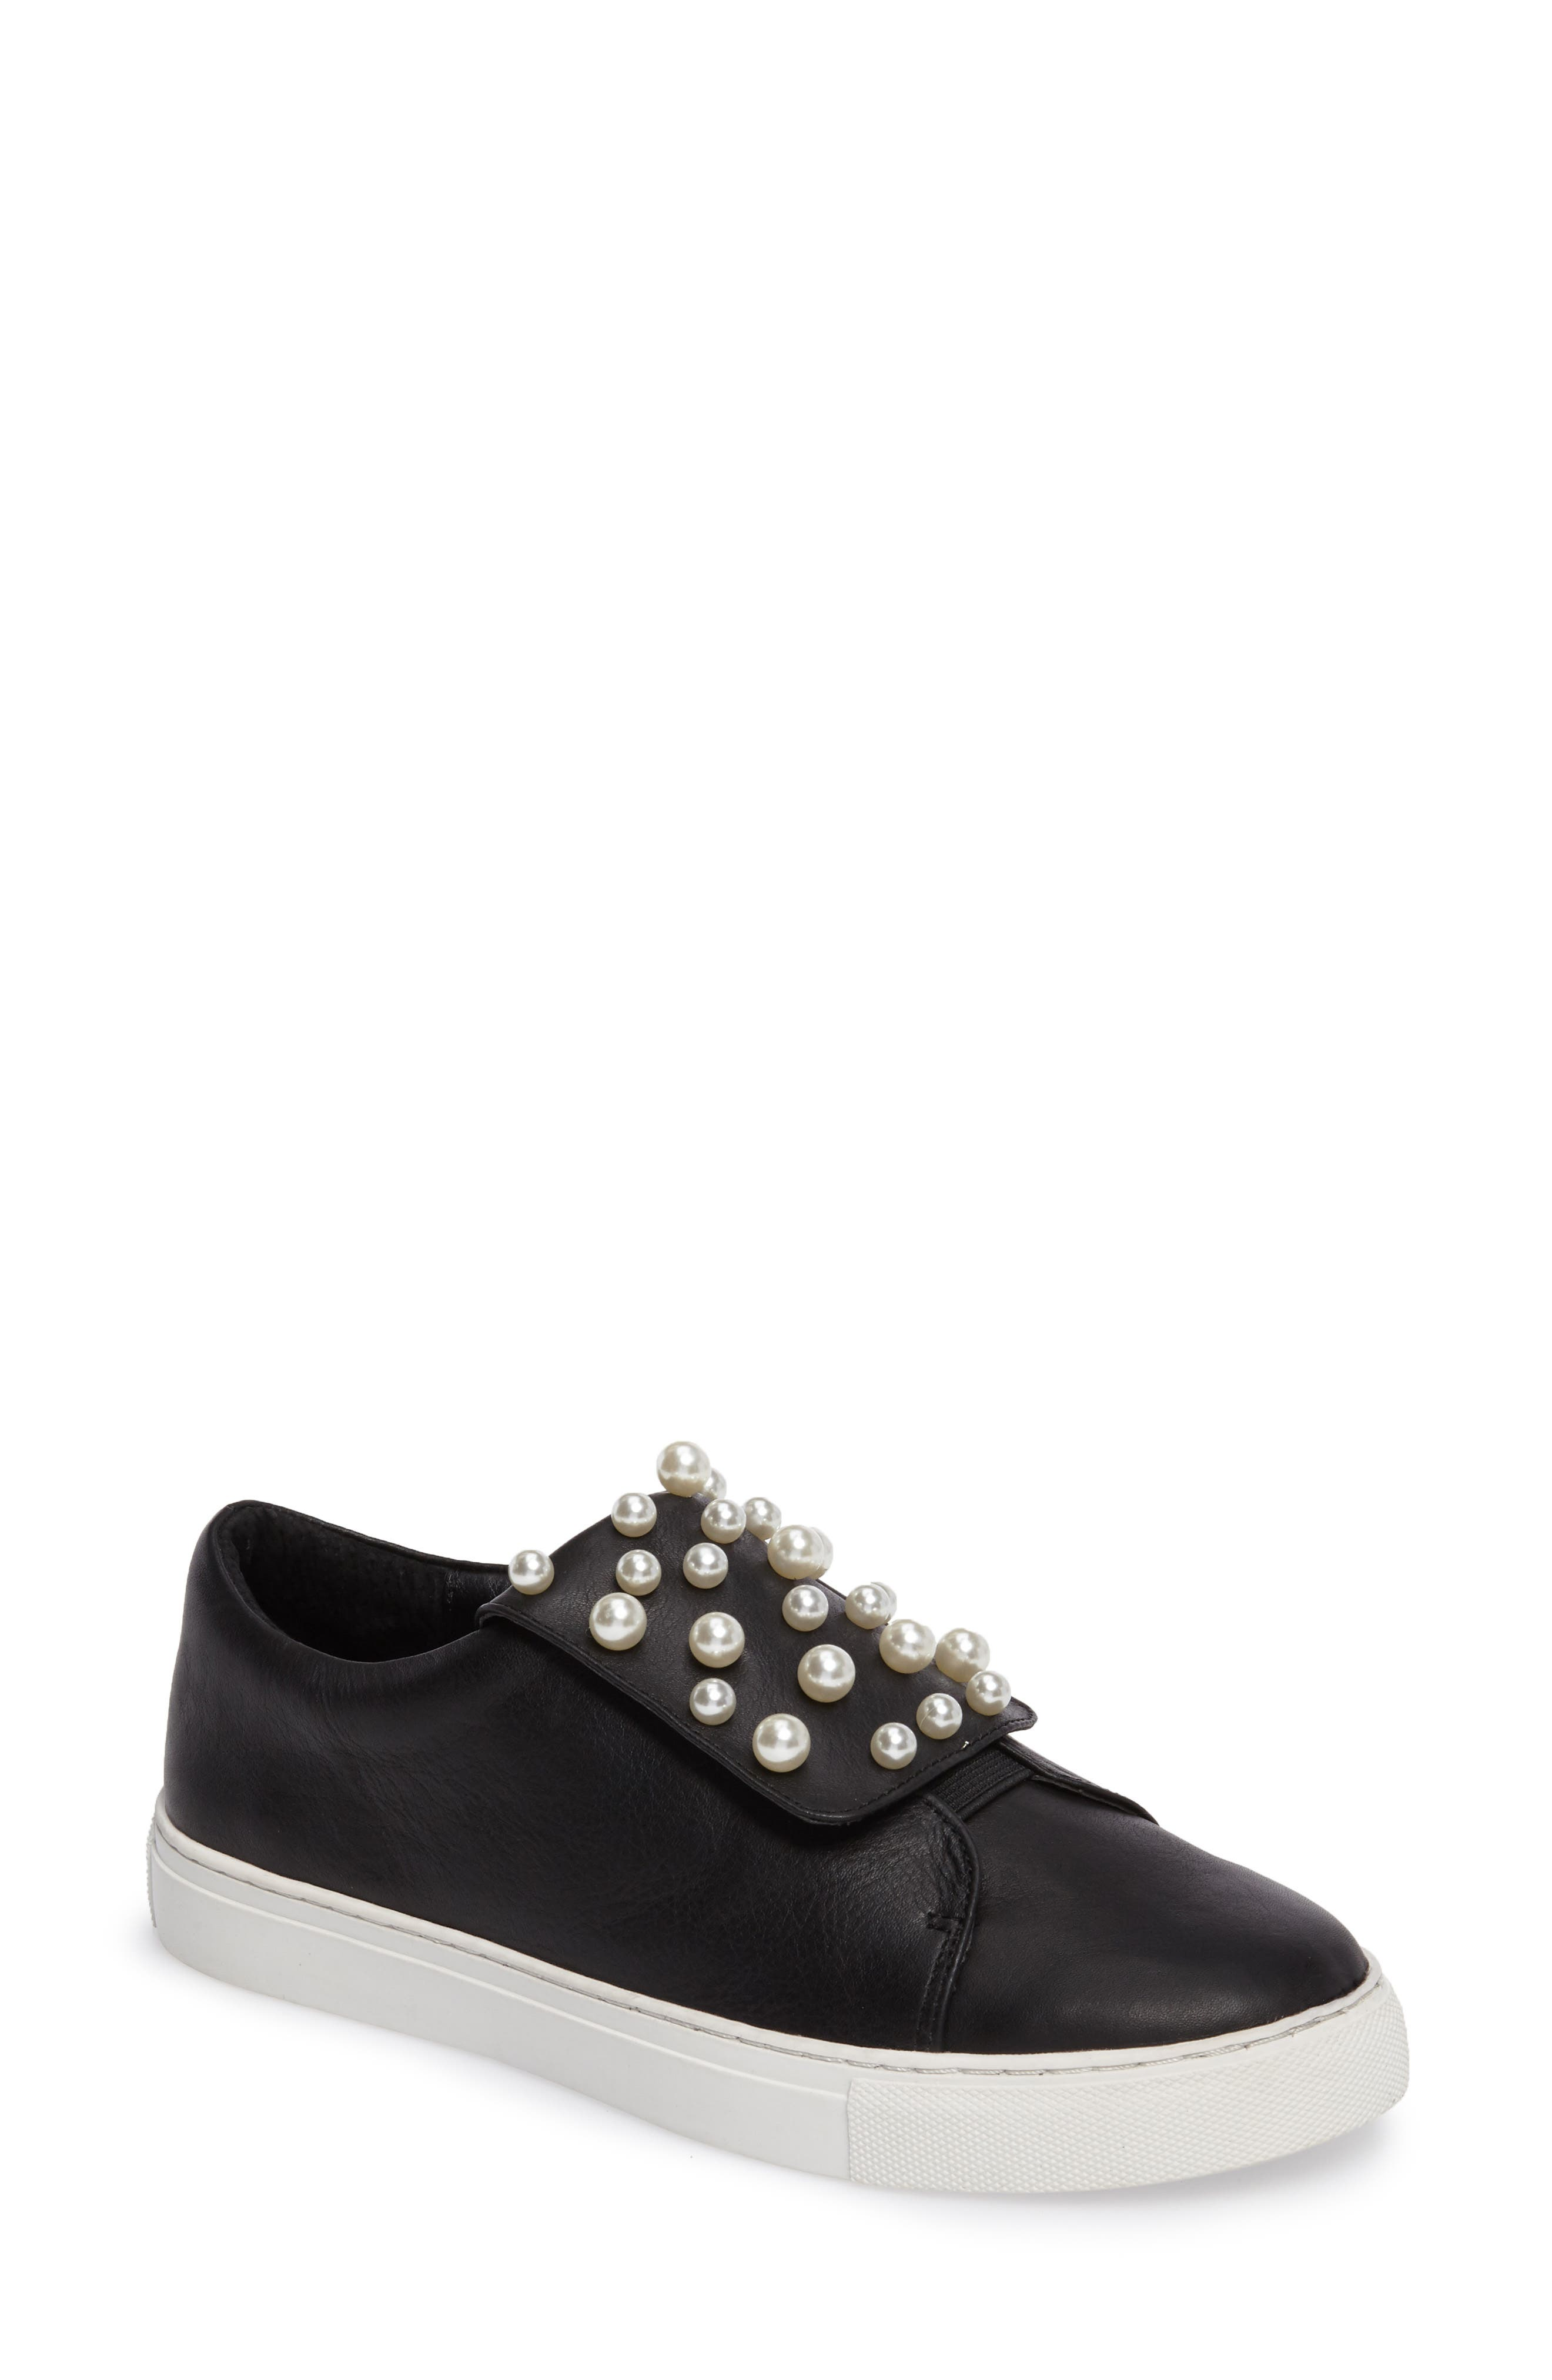 E8 BY MIISTA Hadi Imitation Pearl Embellished Platorm Sneaker, Main, color, 001